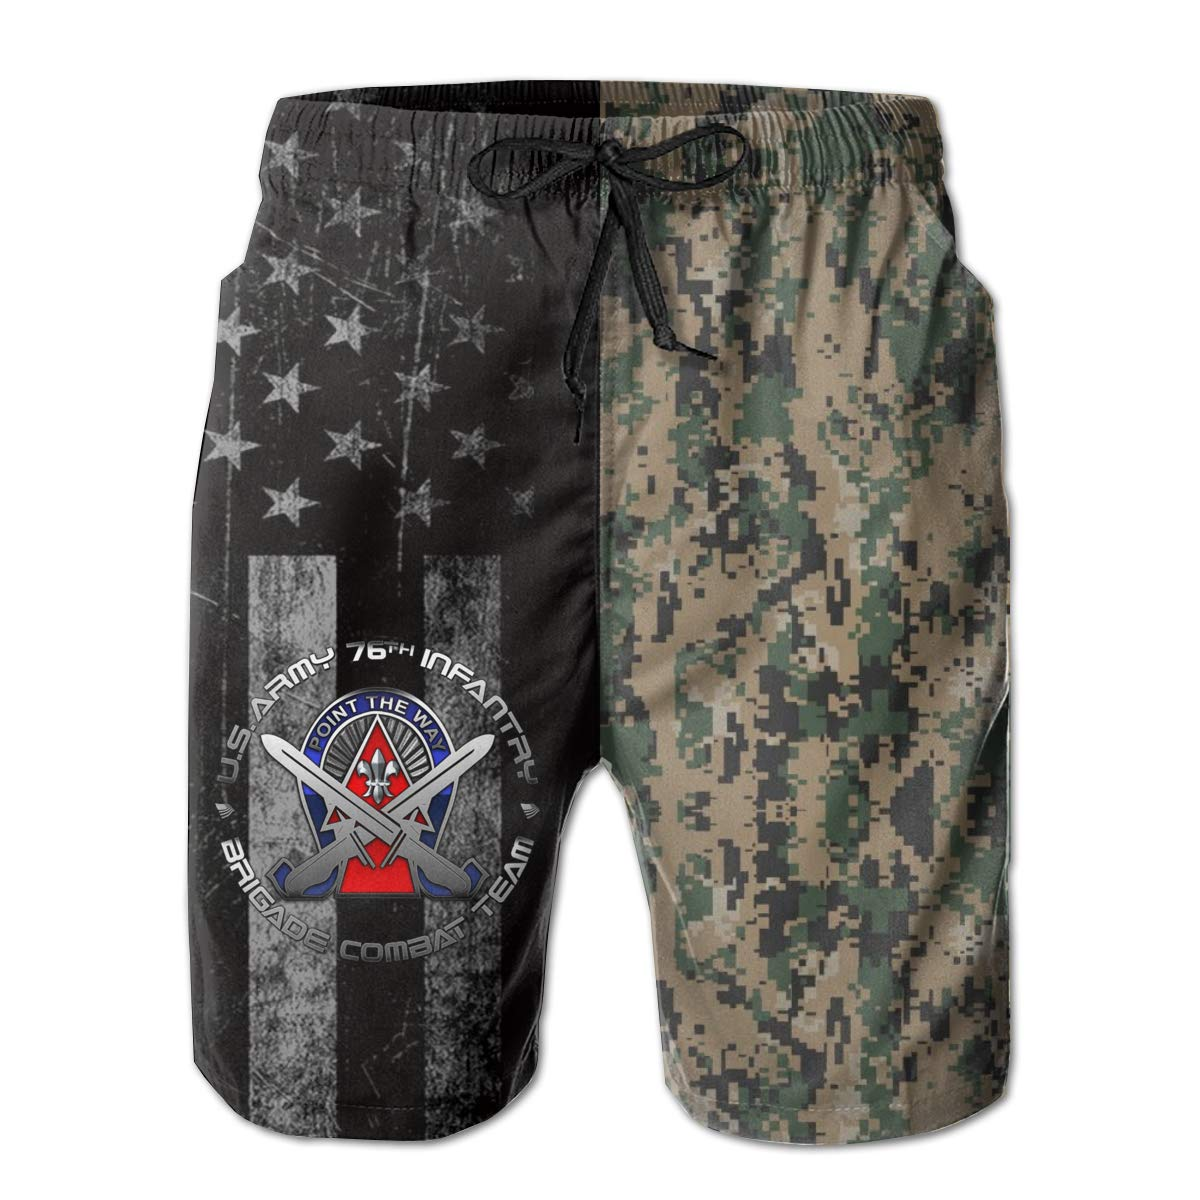 76th Infantry Brigade DUI Mens Swim Trunks Beach Short Board Shorts